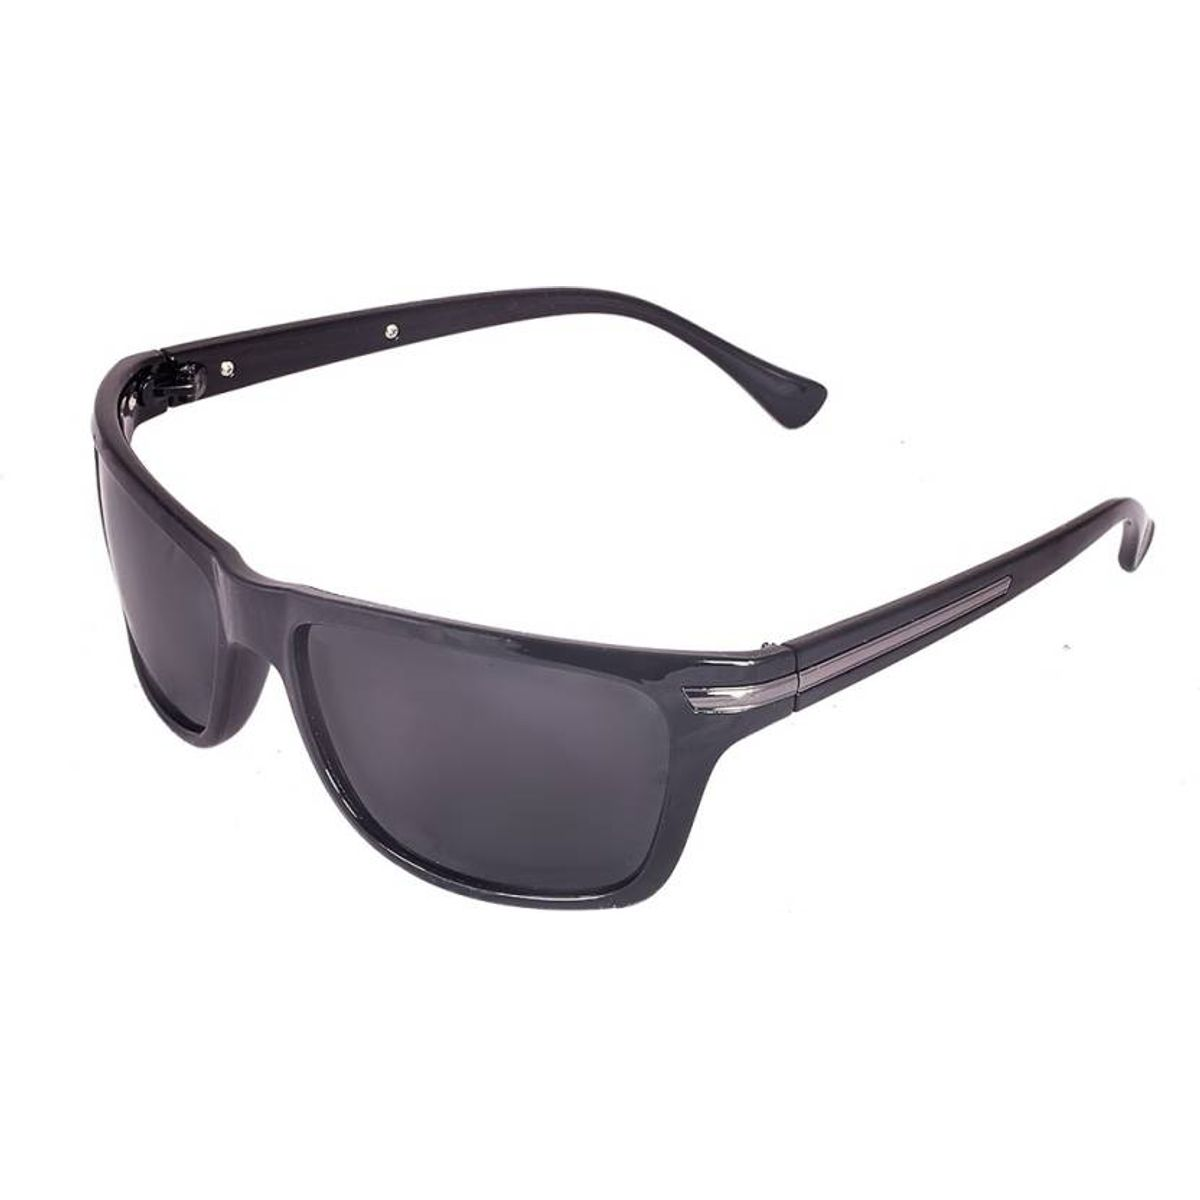 Terry Ford P525 Black Rectangular Sunglasses